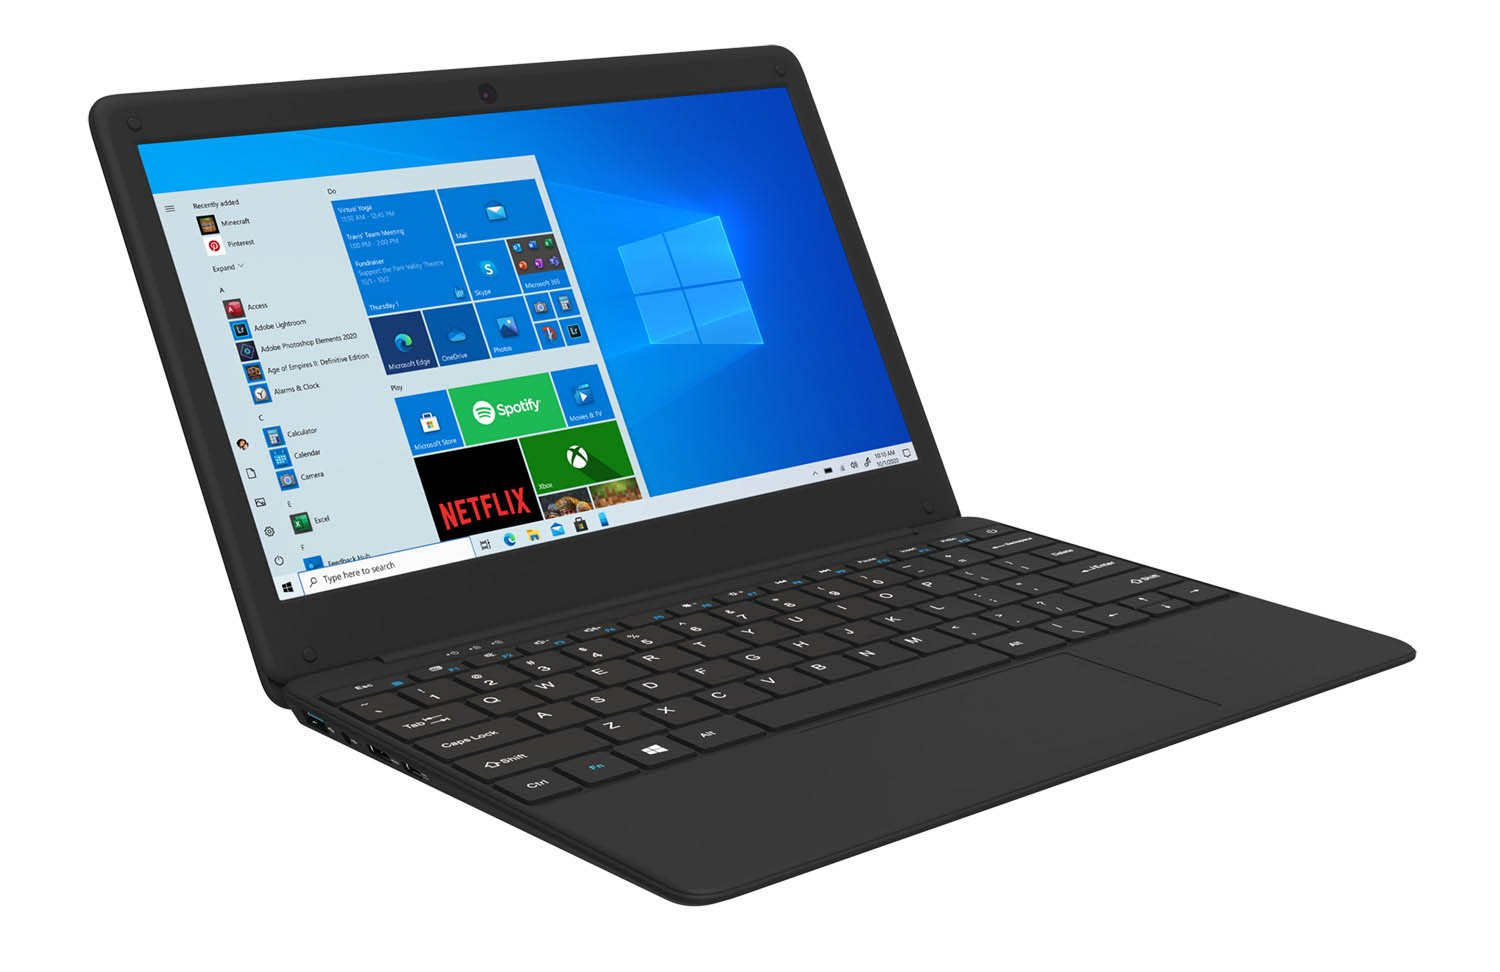 View of the GeoBook 2e laptop from the left side